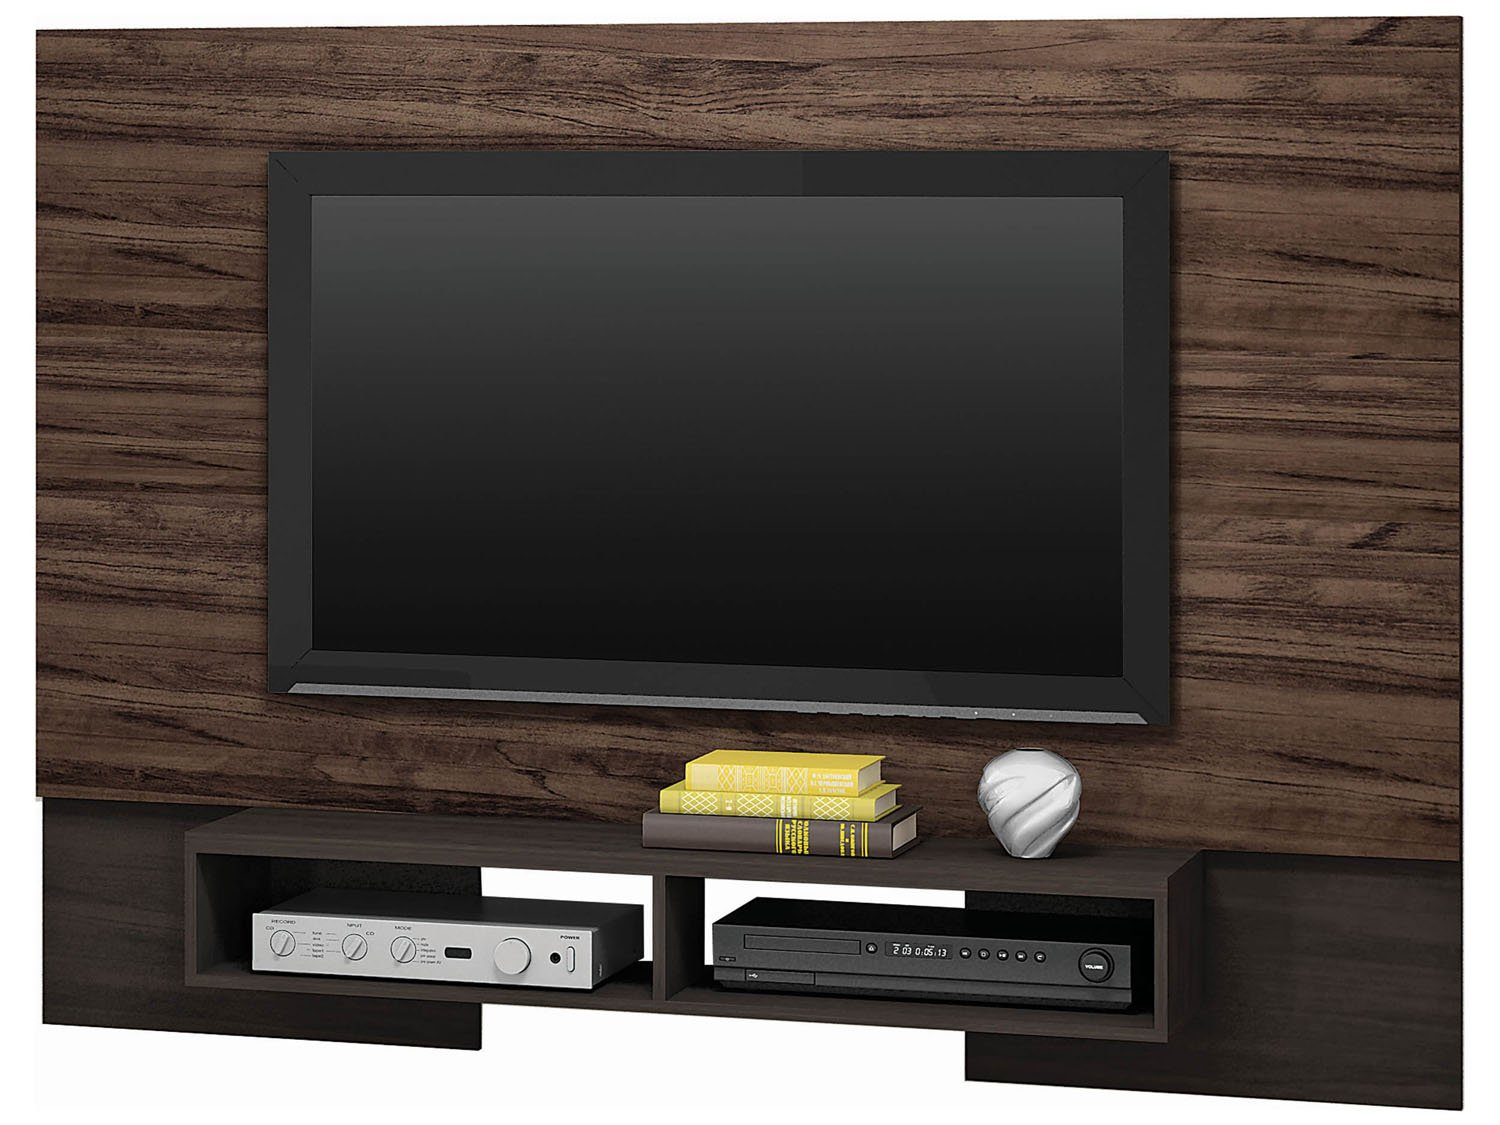 Pin Adesivo De Parede Painel Tv Lcd Led Textura Madeira Rln123 on  #A38F28 1500x1125